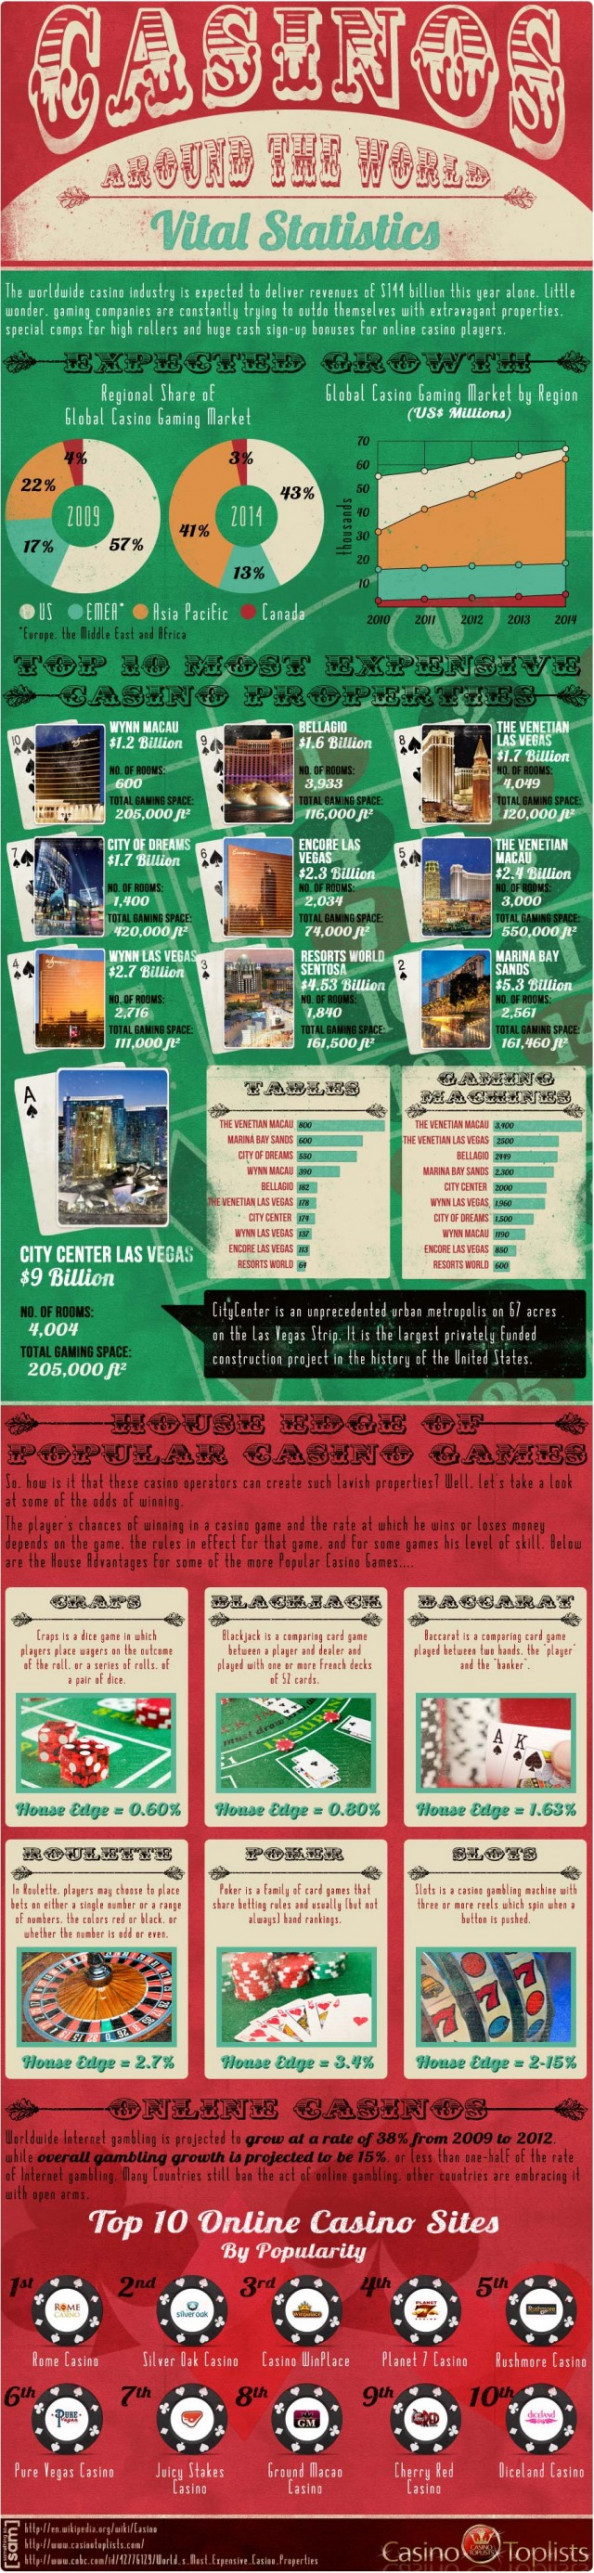 Casinos Around the World - Vital Statistics Infographic